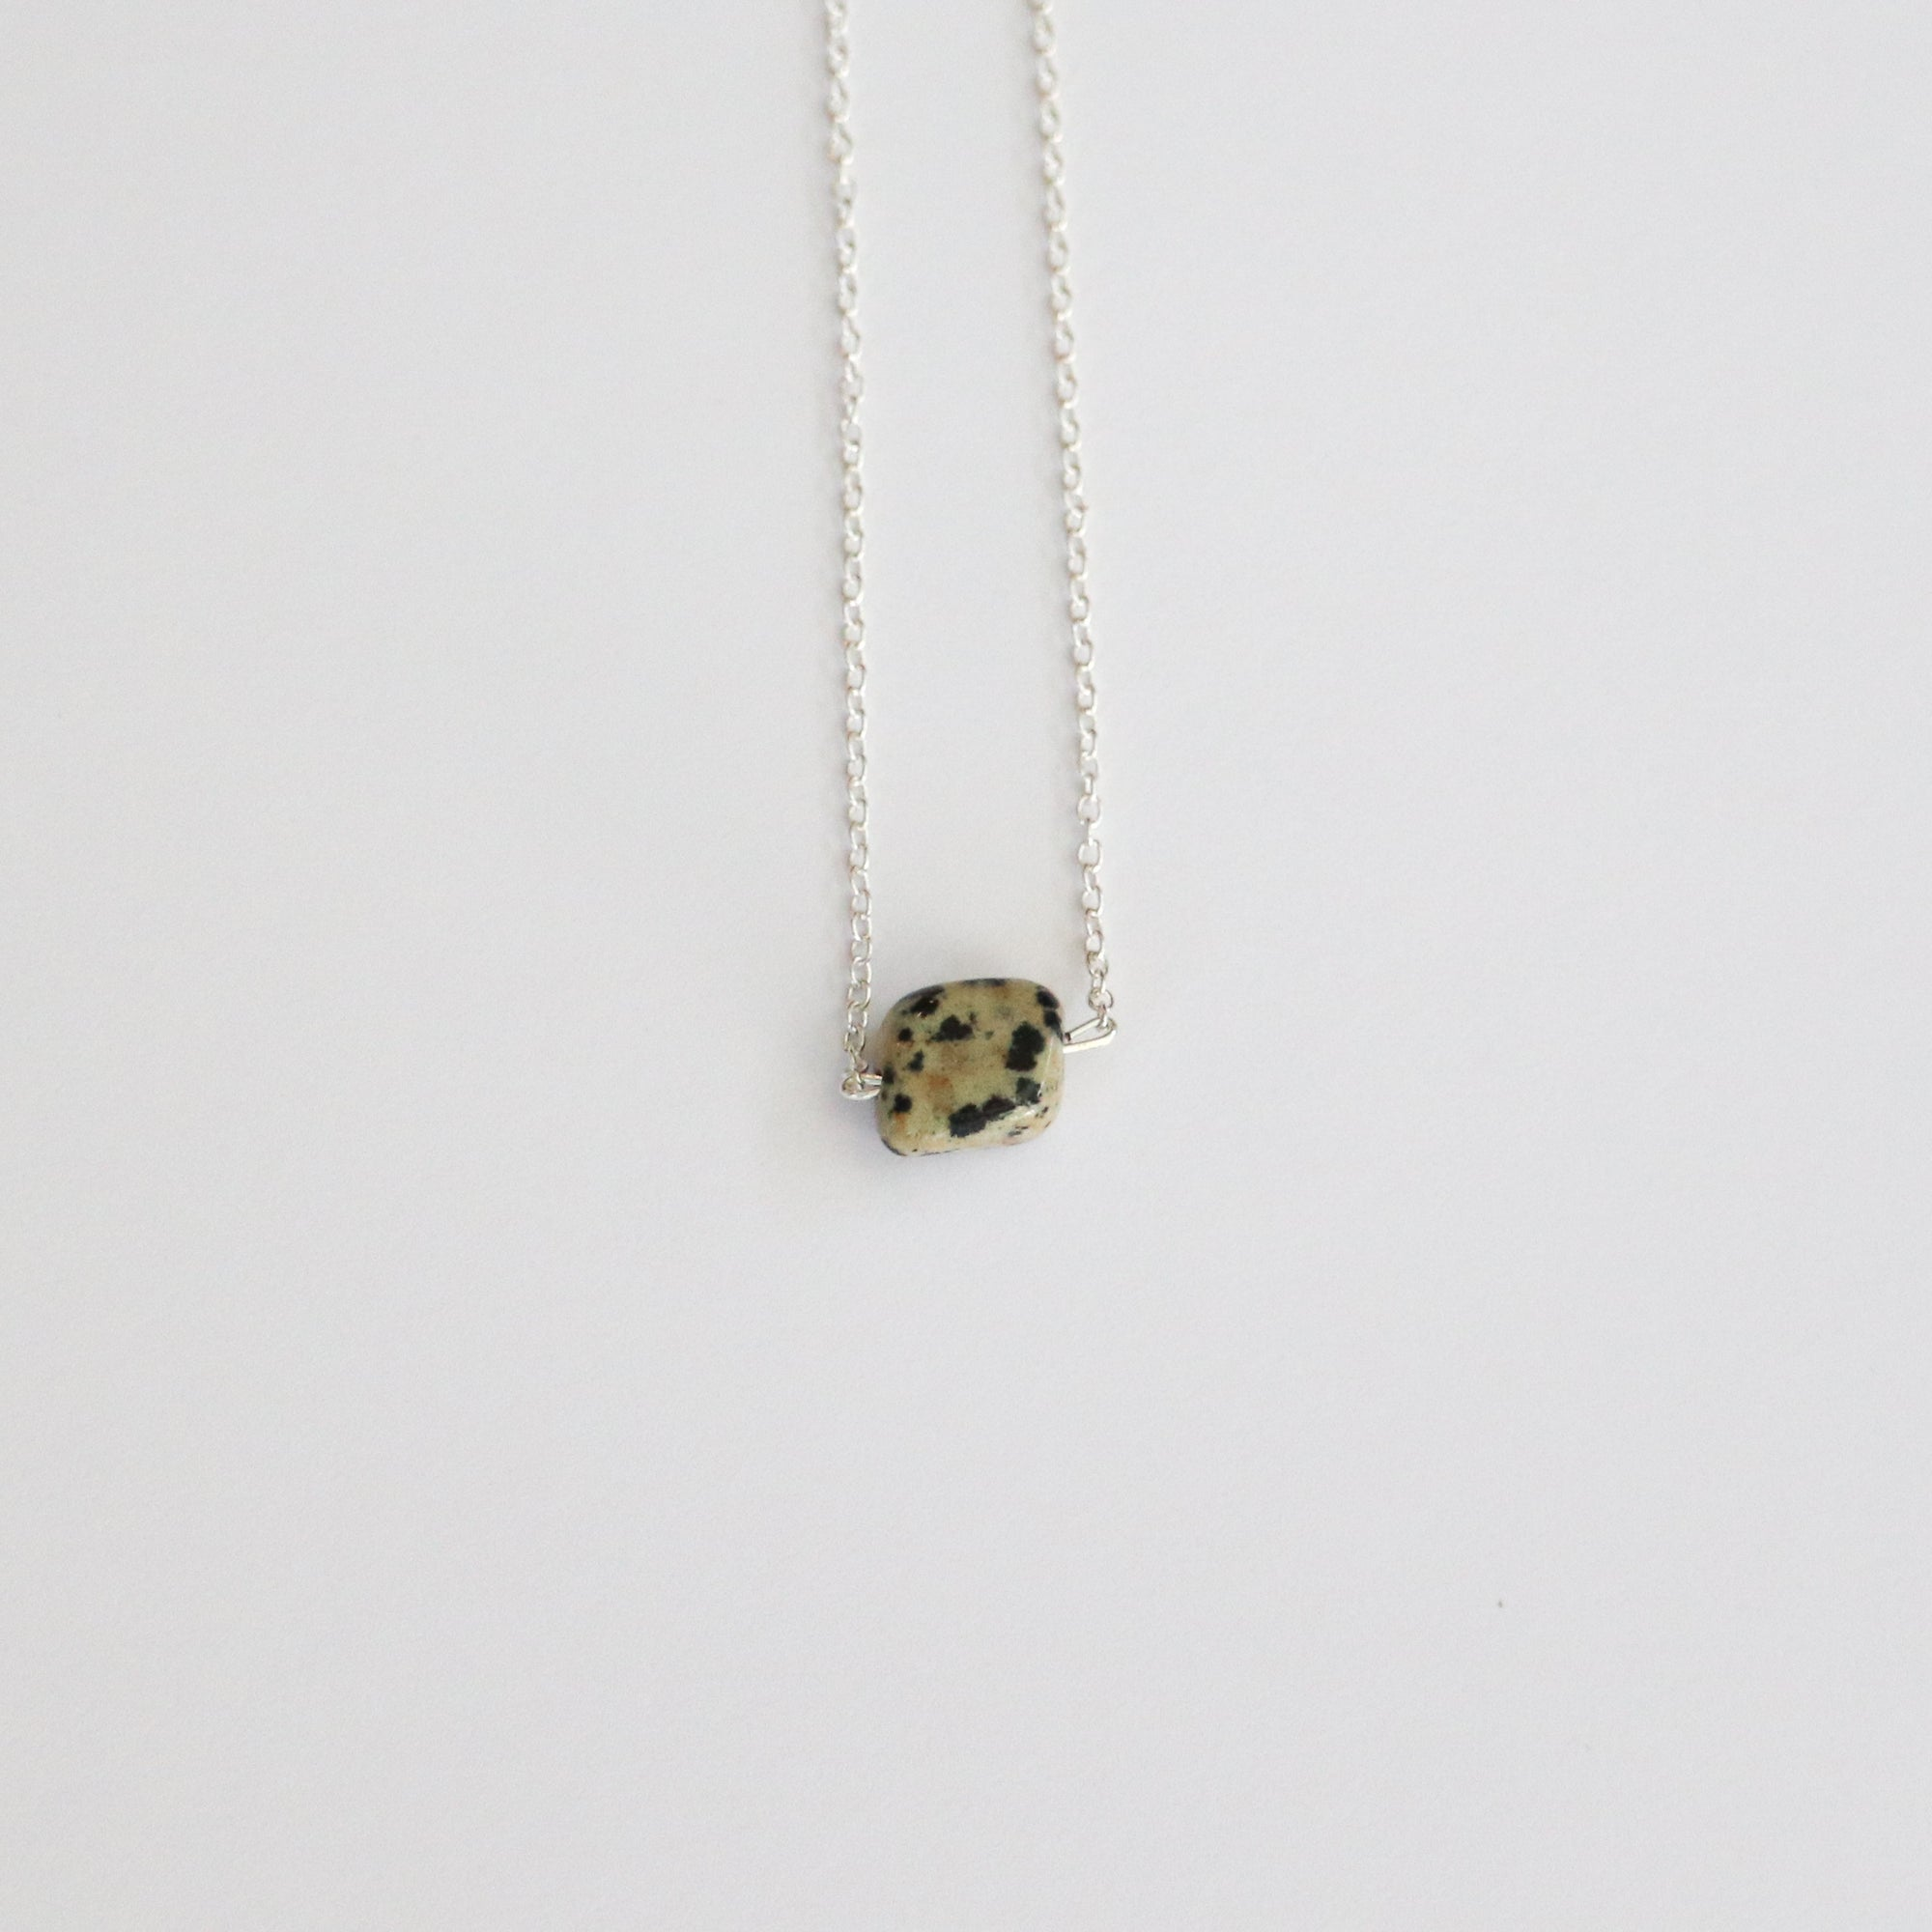 Dalmation Jasper Sterling Silver Necklace